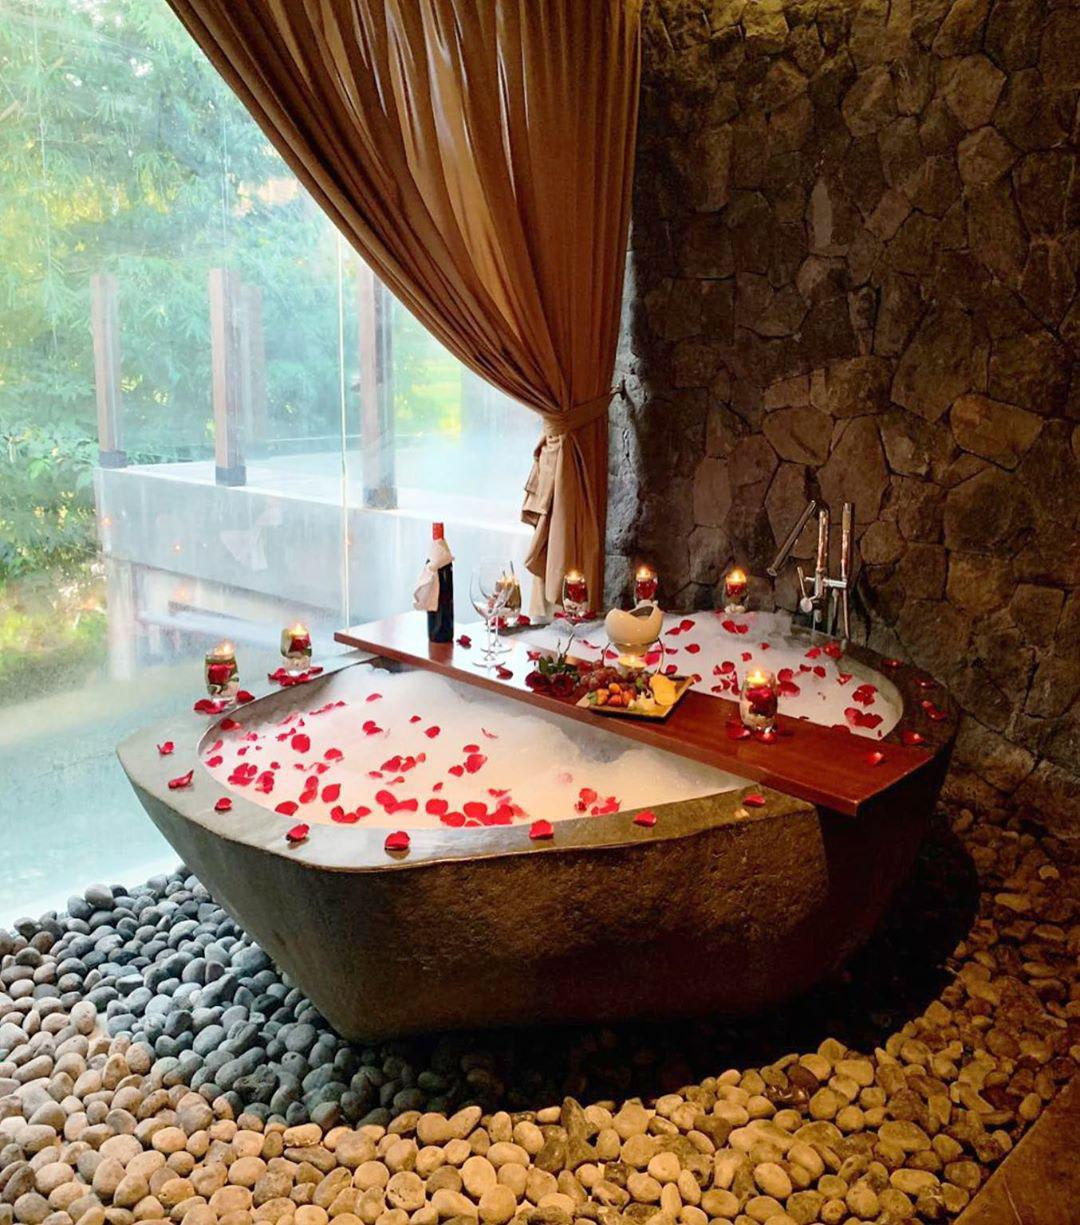 romantic-dates-bali-bubble-spa